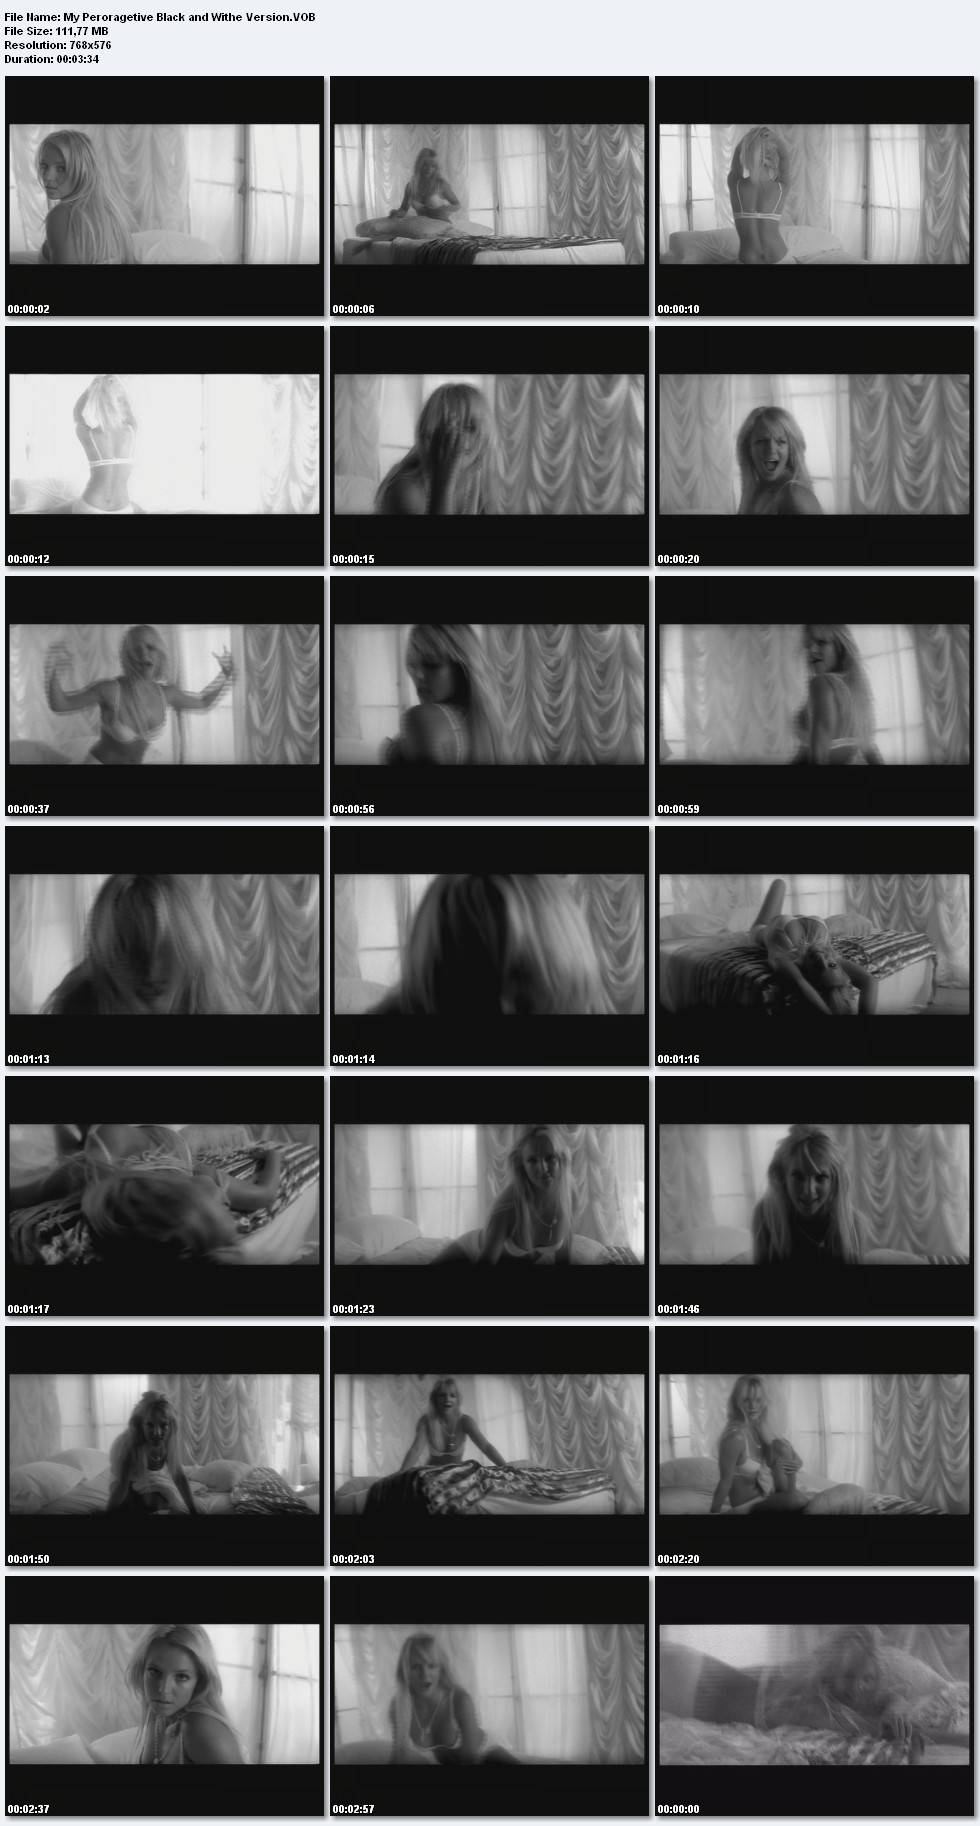 Britney Spears - My Peroragetive -In bed Black and White version